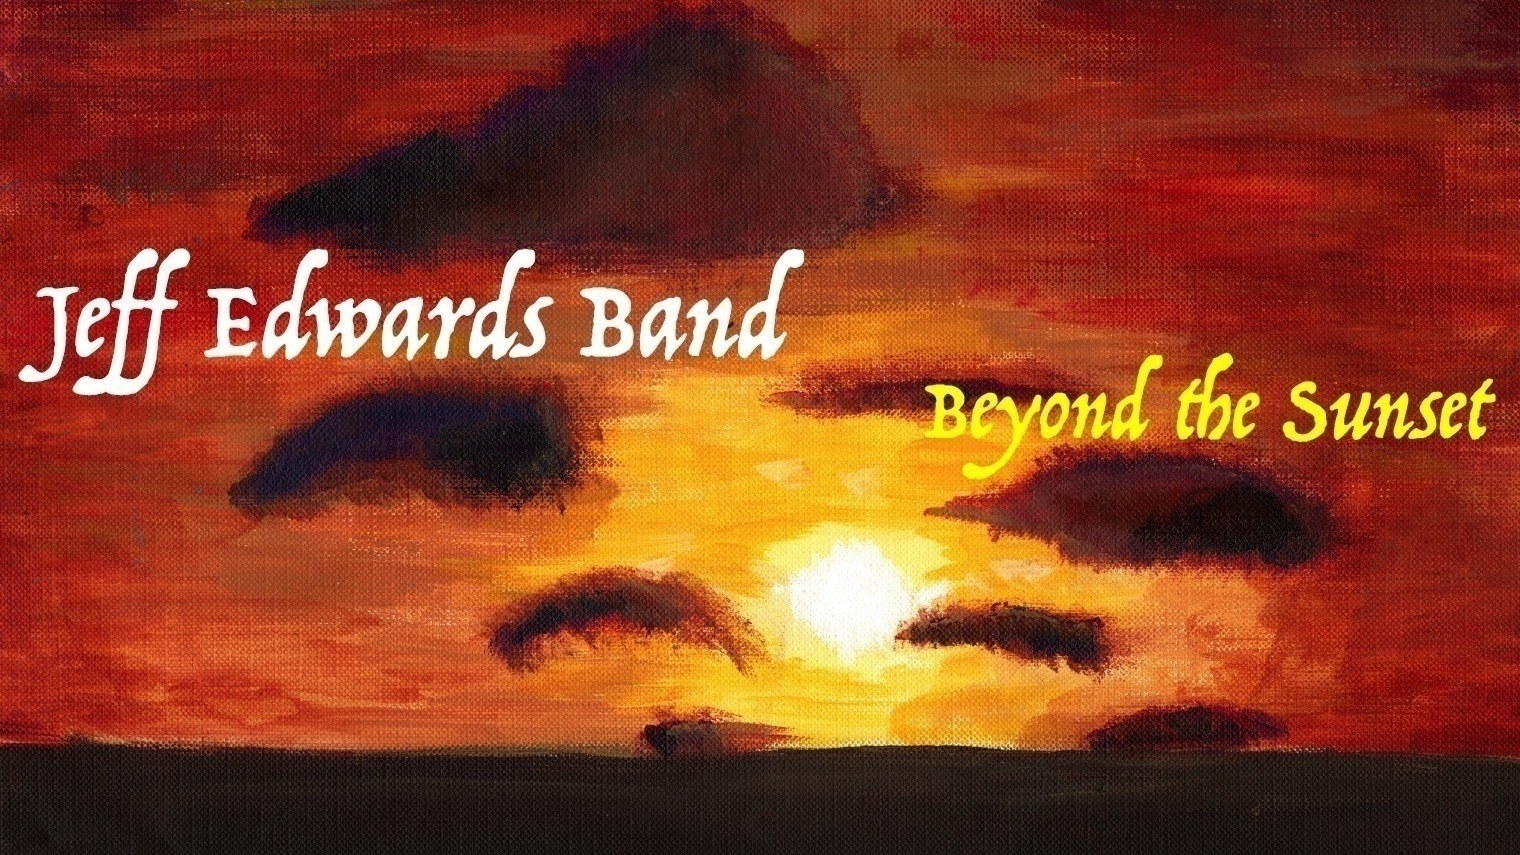 Jeff Edwards Band - Beyond The Sunset